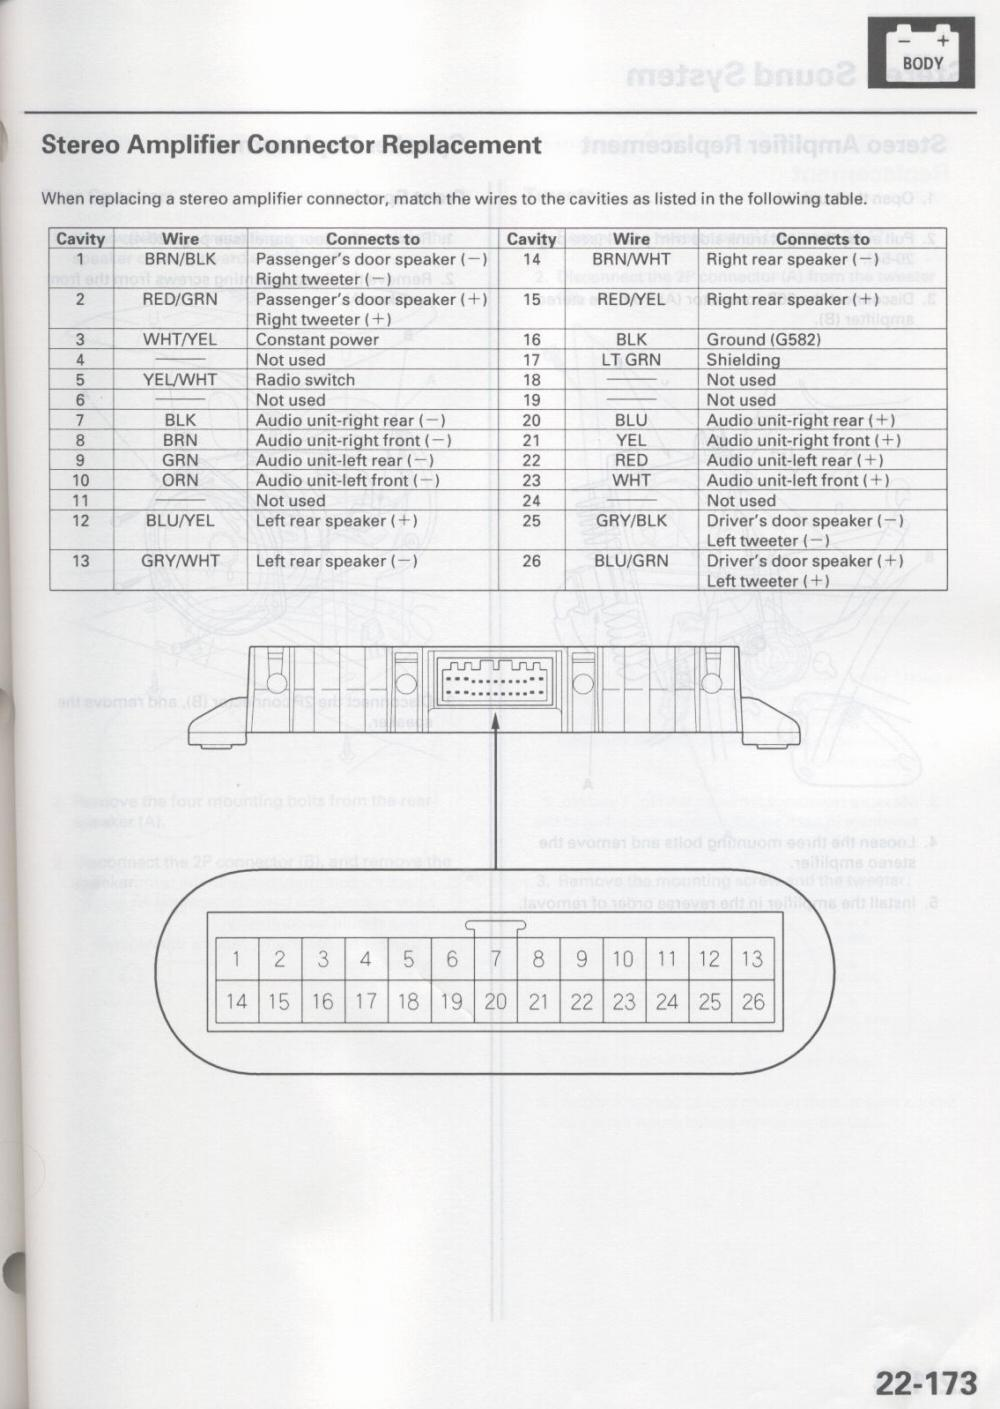 2002 Eclipse Radio Wiring Diagram Car Radio Stereo Audio Wiring Diagram Autoradio Connector